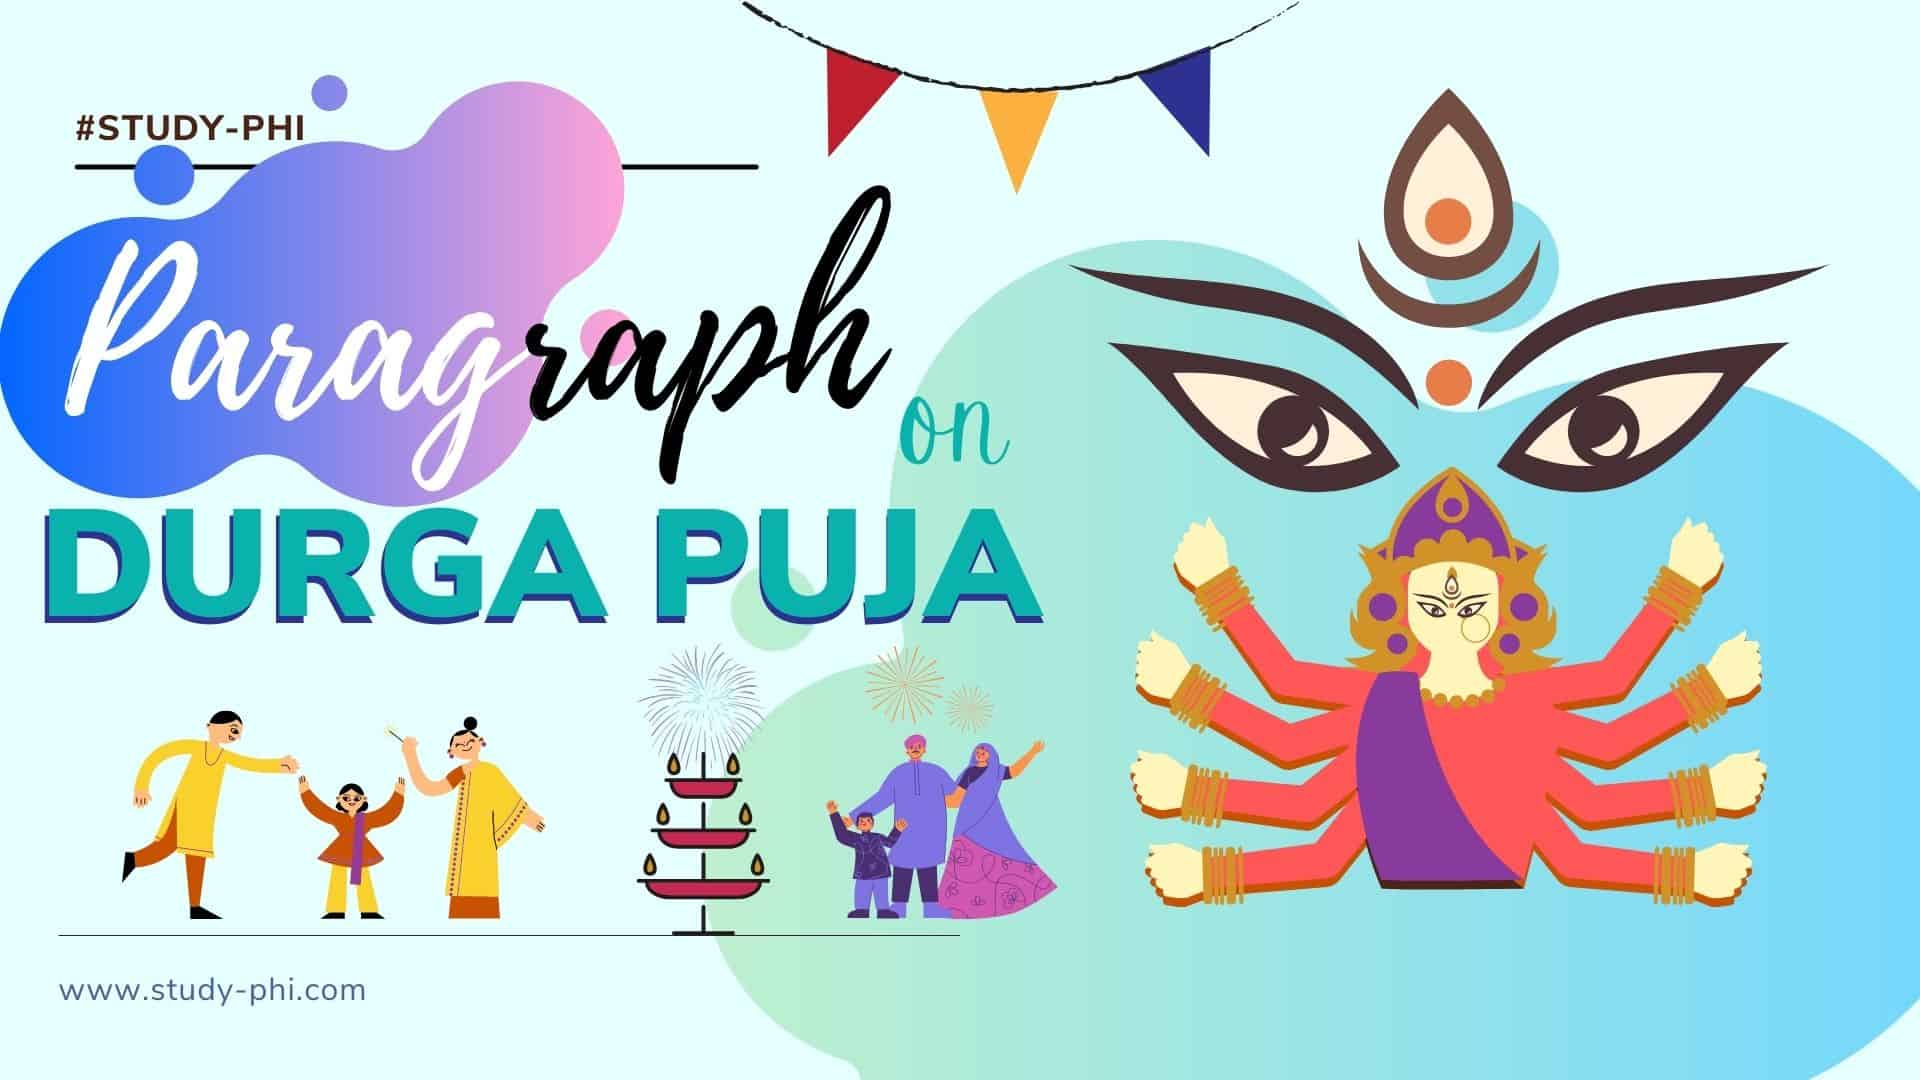 Paragraph on Durga Puja